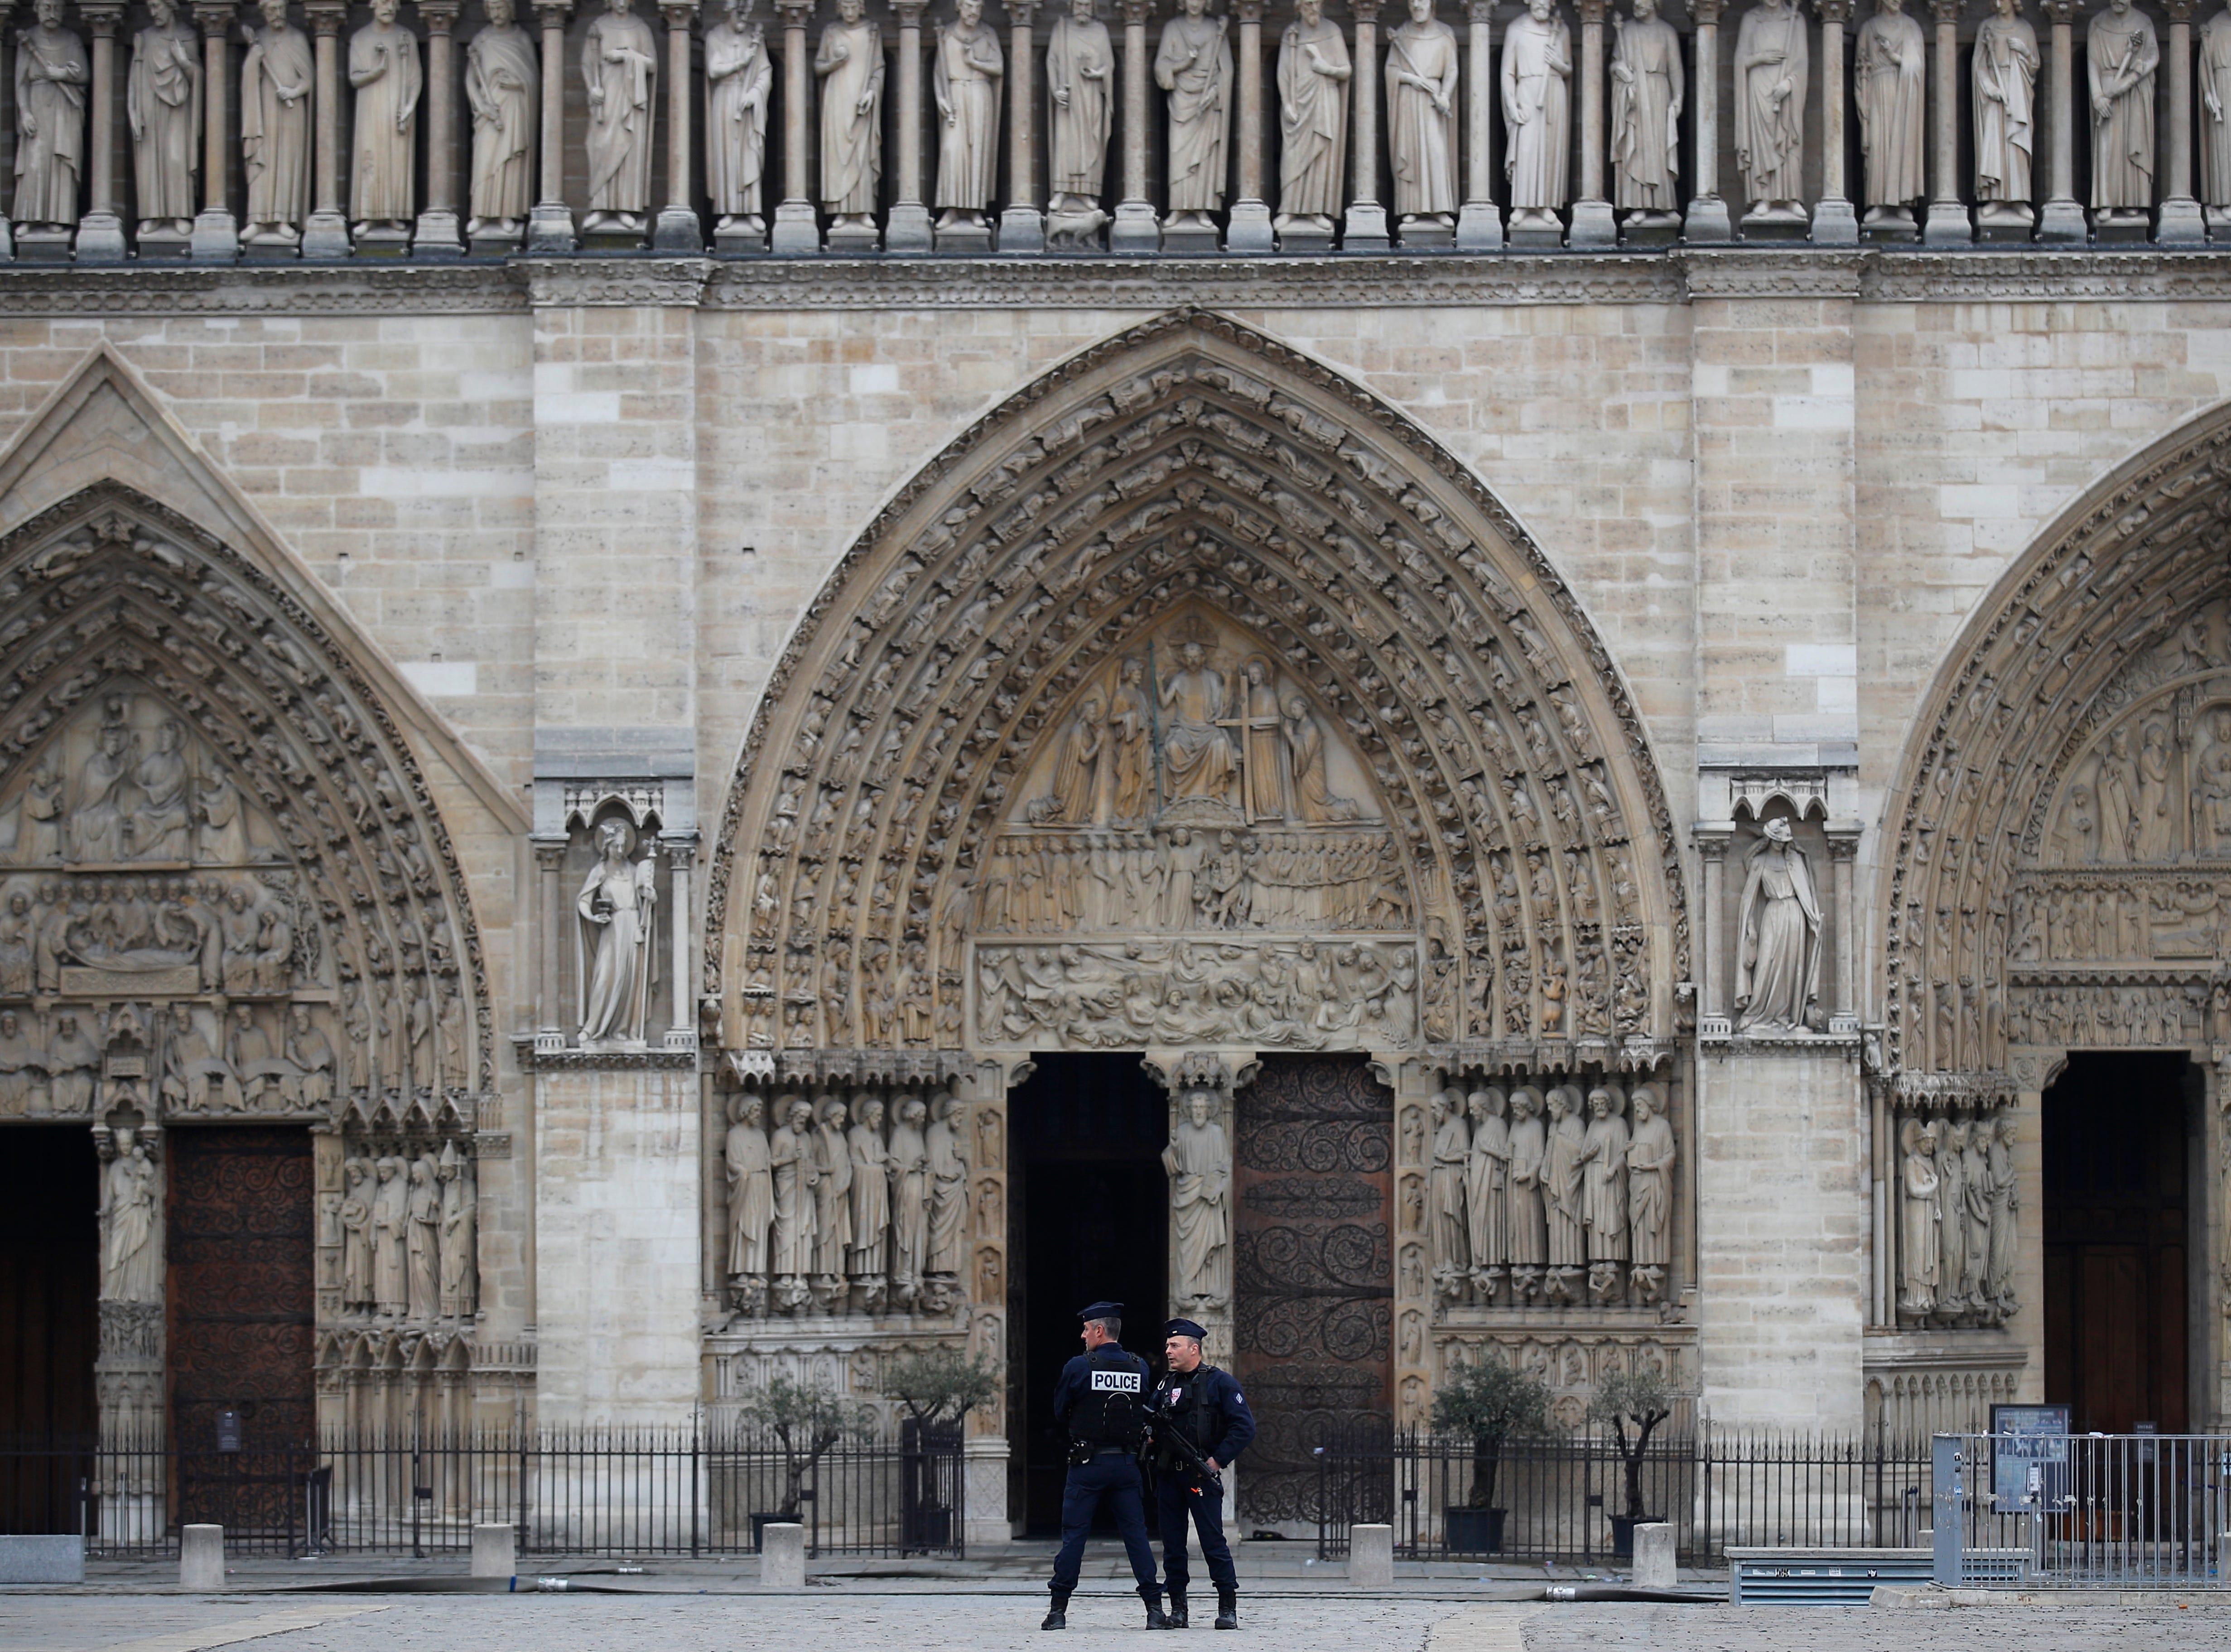 Police officers patrol outside Notre Dame cathedral Tuesday April 16, 2019 in Paris. Firefighters declared success Tuesday in a more than 12-hour battle to extinguish an inferno engulfing Paris' iconic Notre Dame cathedral that claimed its spire and roof, but spared its bell towers. (AP Photo/Francois Mori)